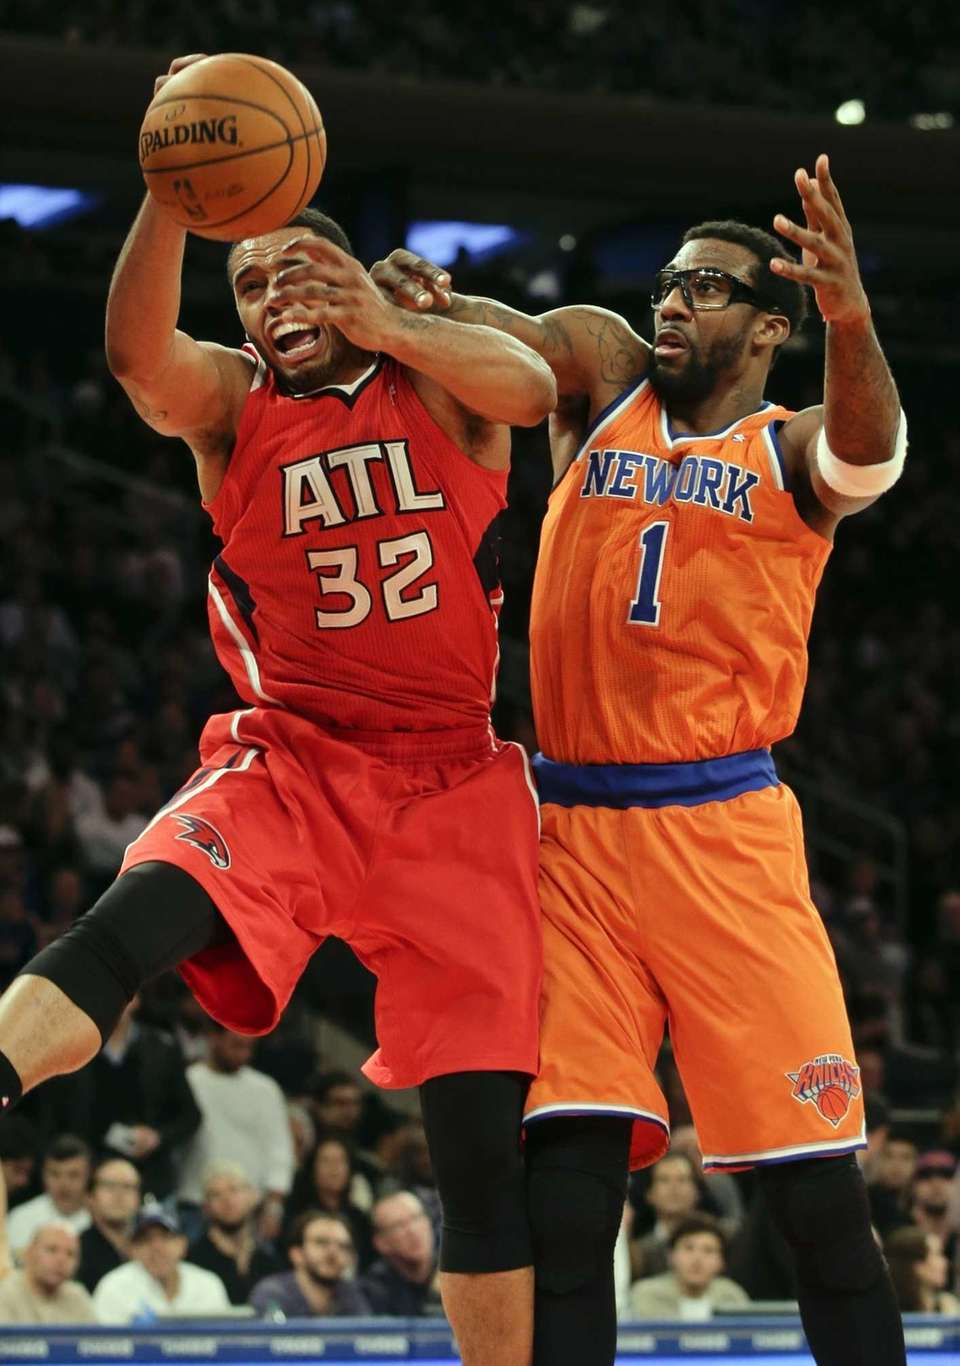 Knicks power forward Amar'e Stoudemire fouls Atlanta Hawks